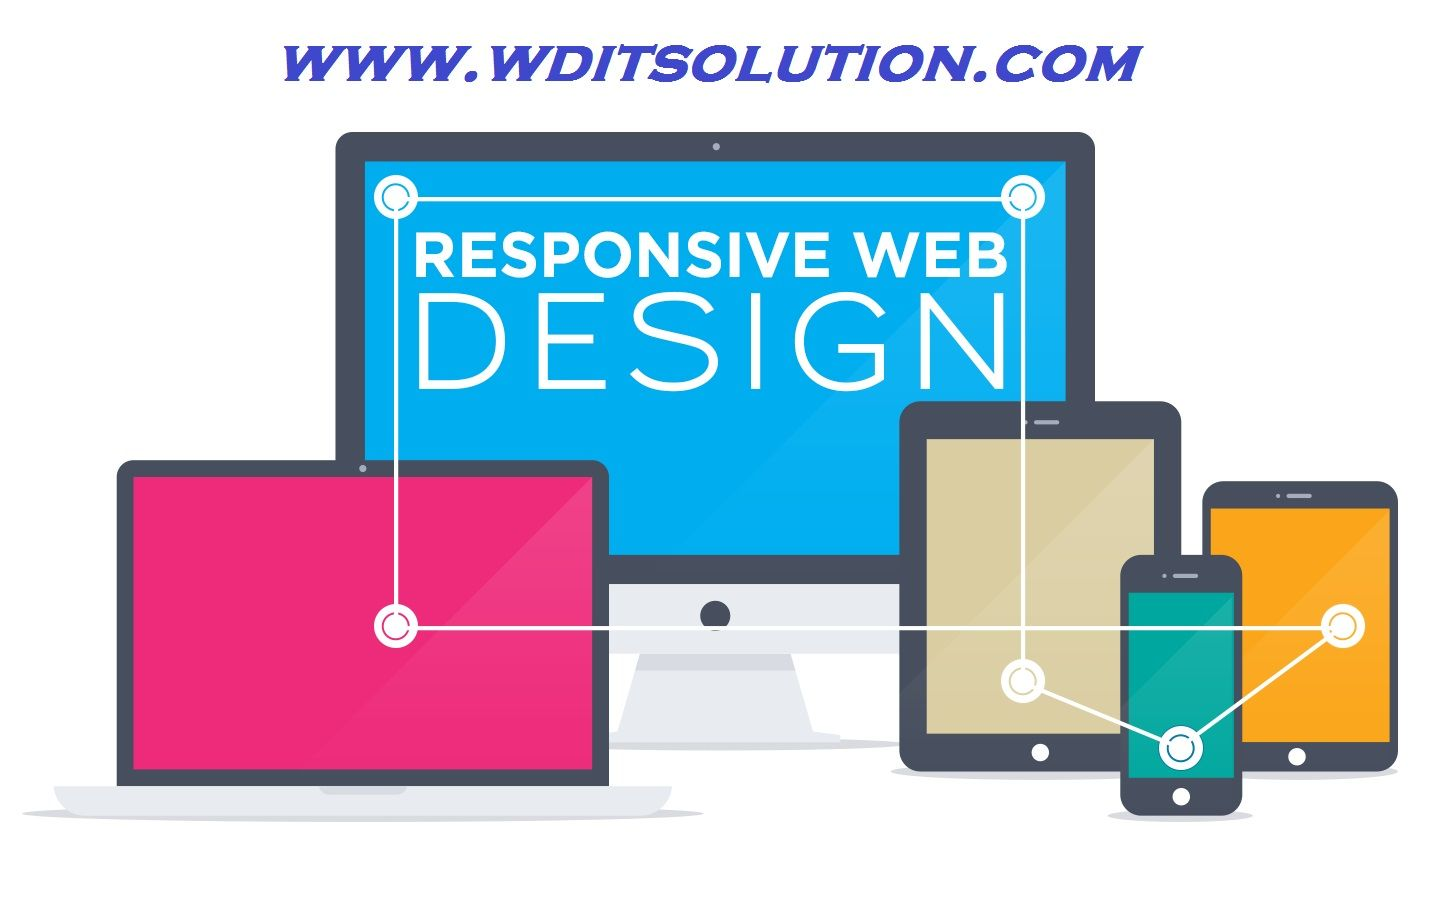 Wditsolution is the best web design company ... see more for log on .... www.wditsolution.com